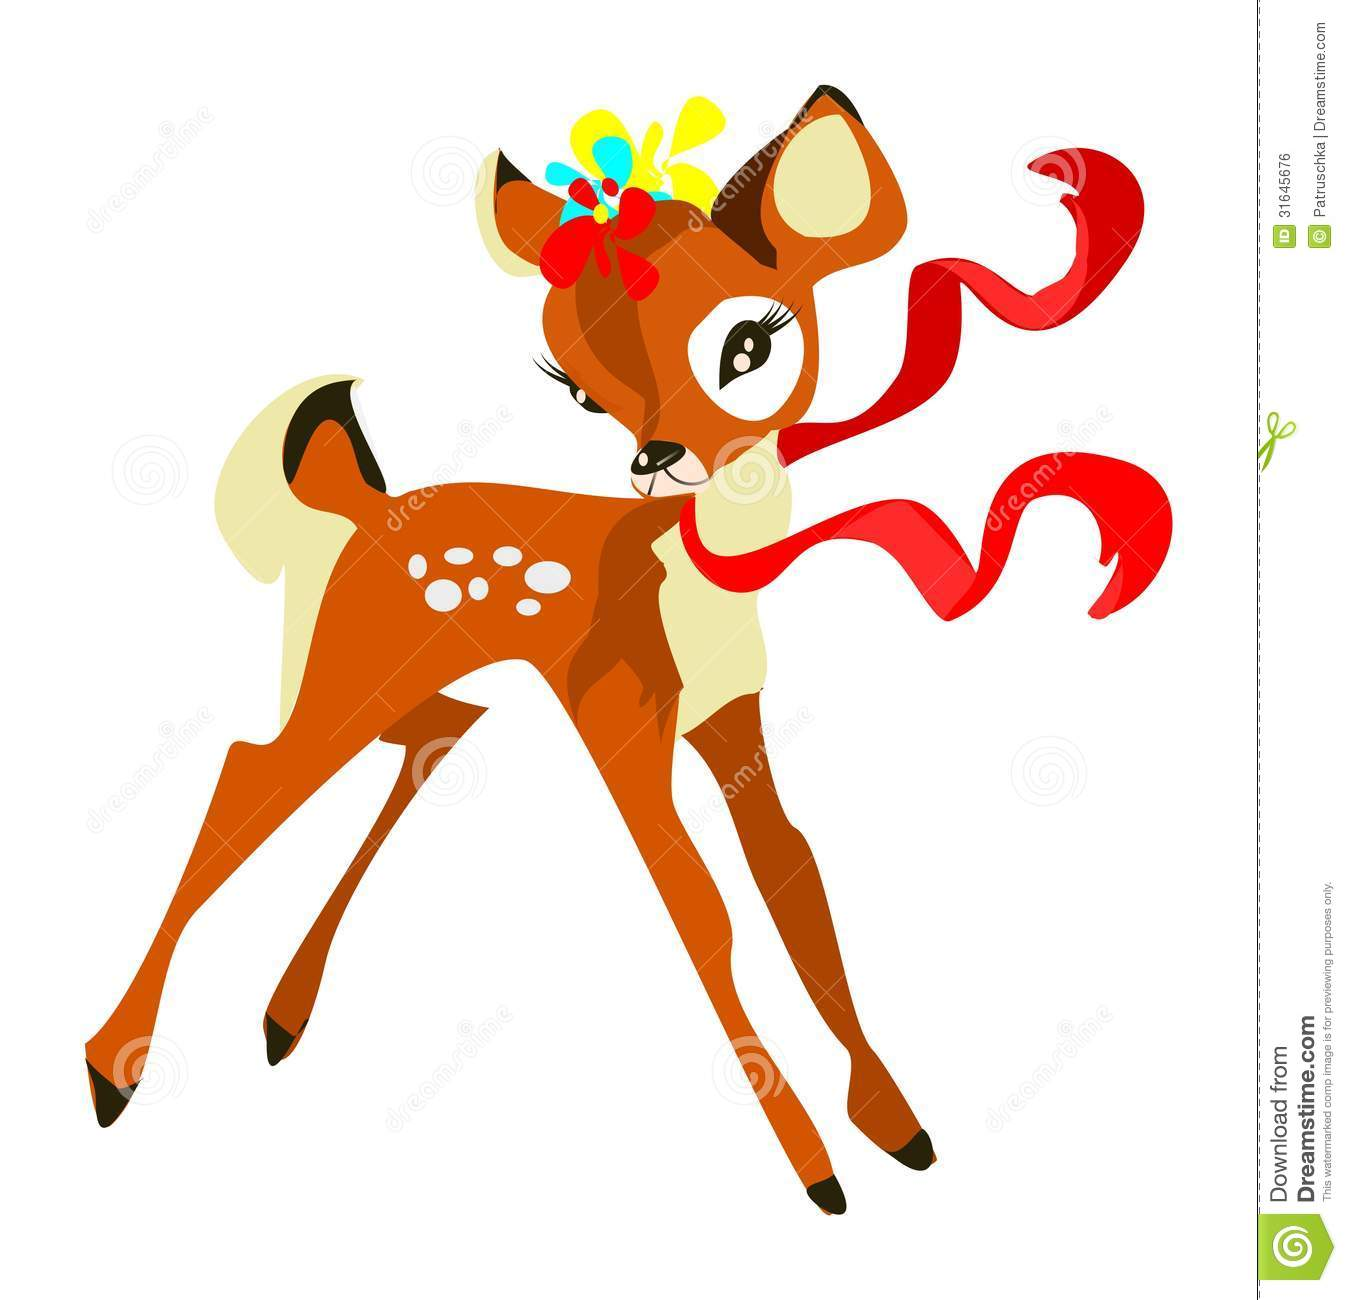 clip art baby deer viewing clipart panda free clipart images rh clipartpanda com woodland baby deer clipart mom and baby deer clipart